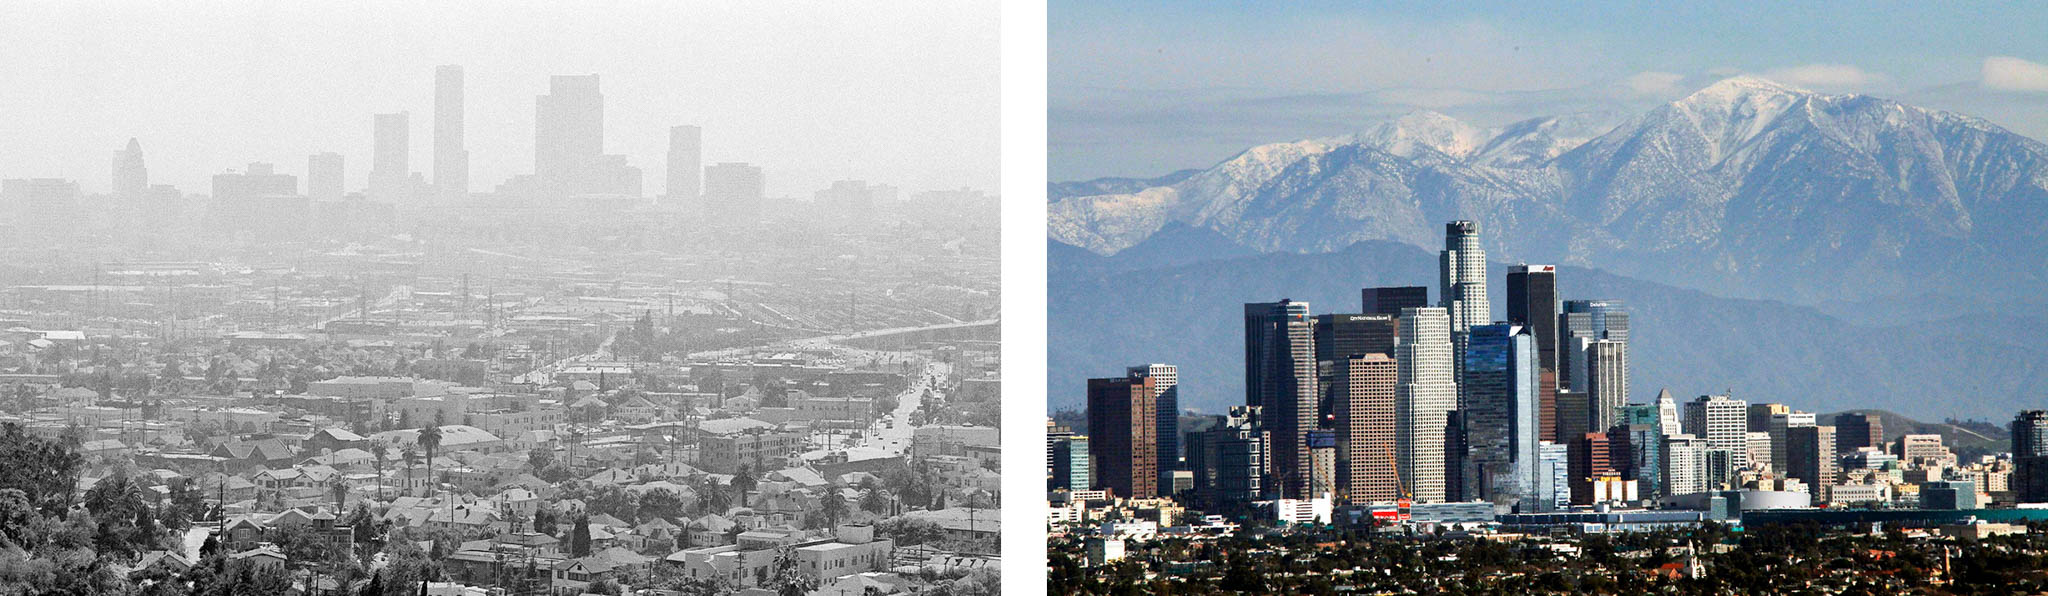 Los Angeles with smog, left, and with clean air revealing the San Gabriel Mountains, right (Both images © Nick Ut/AP Images)